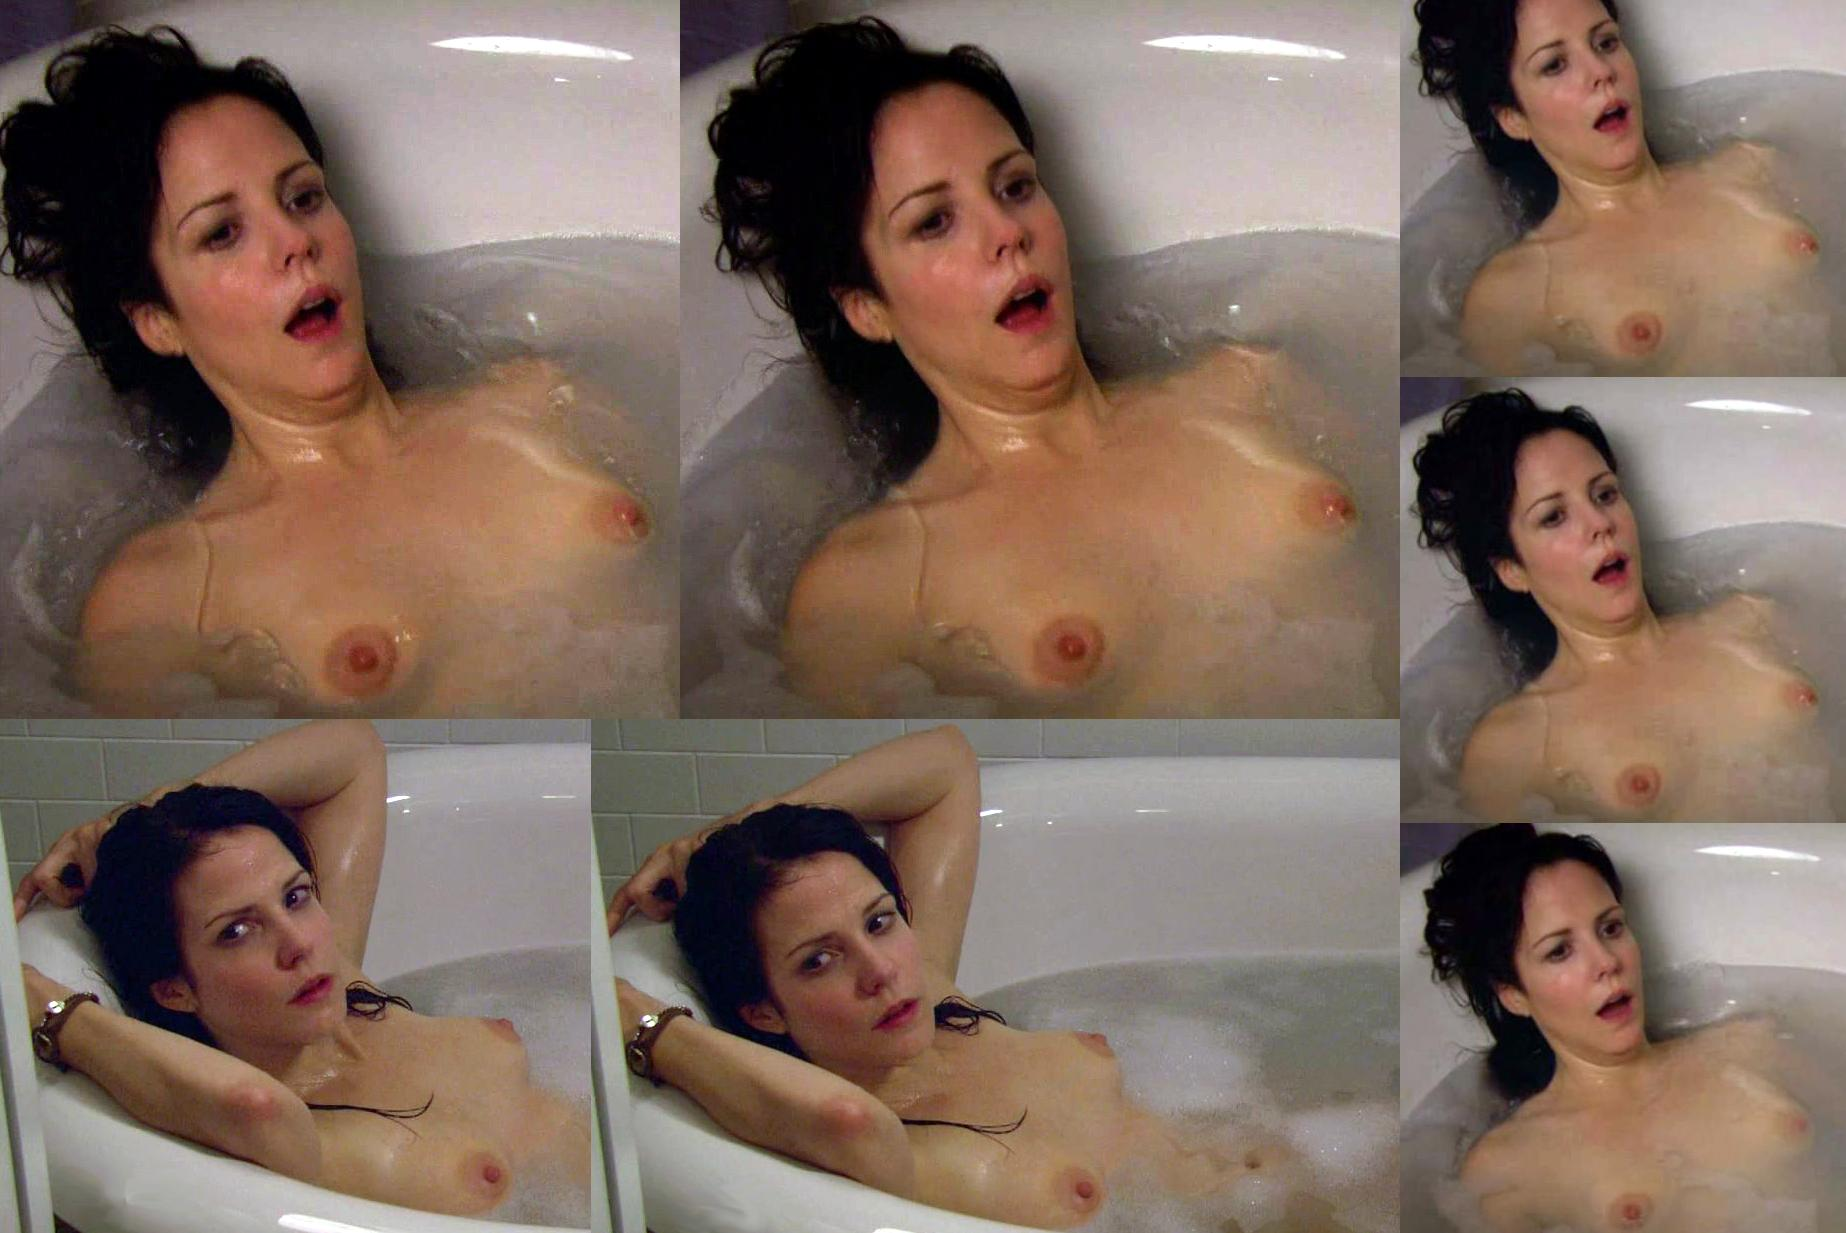 Nancy botwin nude pictures 8